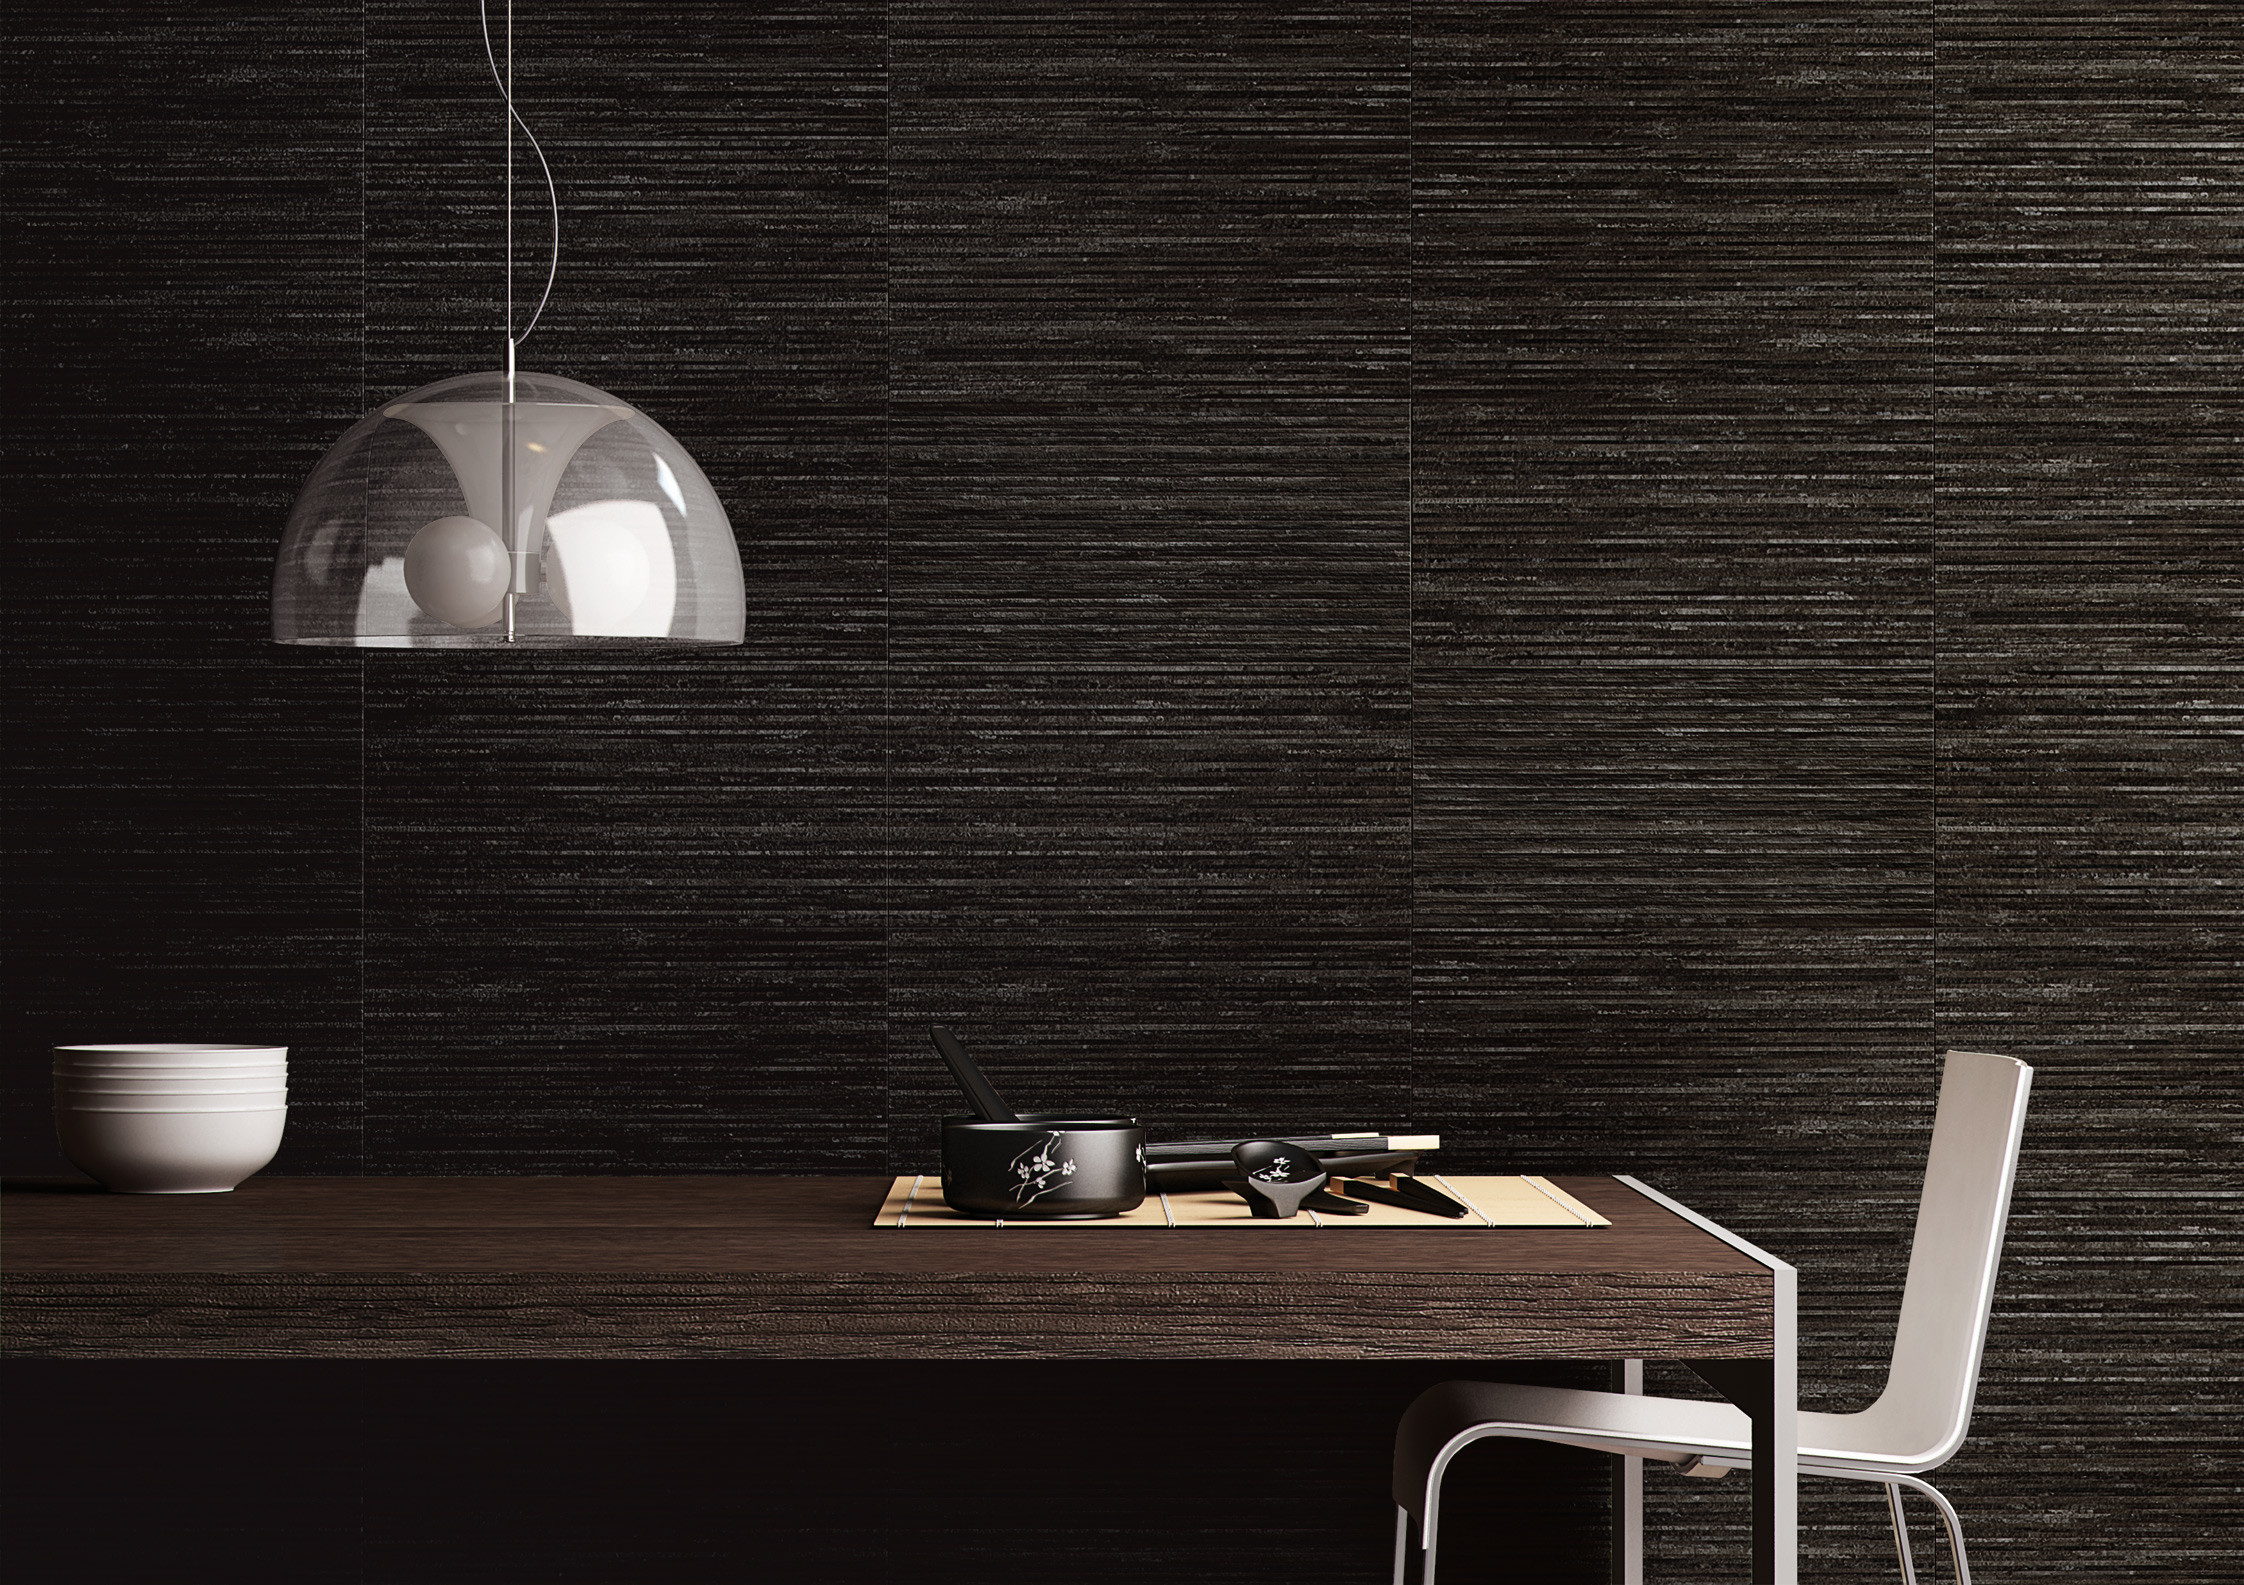 2244x1585 Linear floor and wall tiles